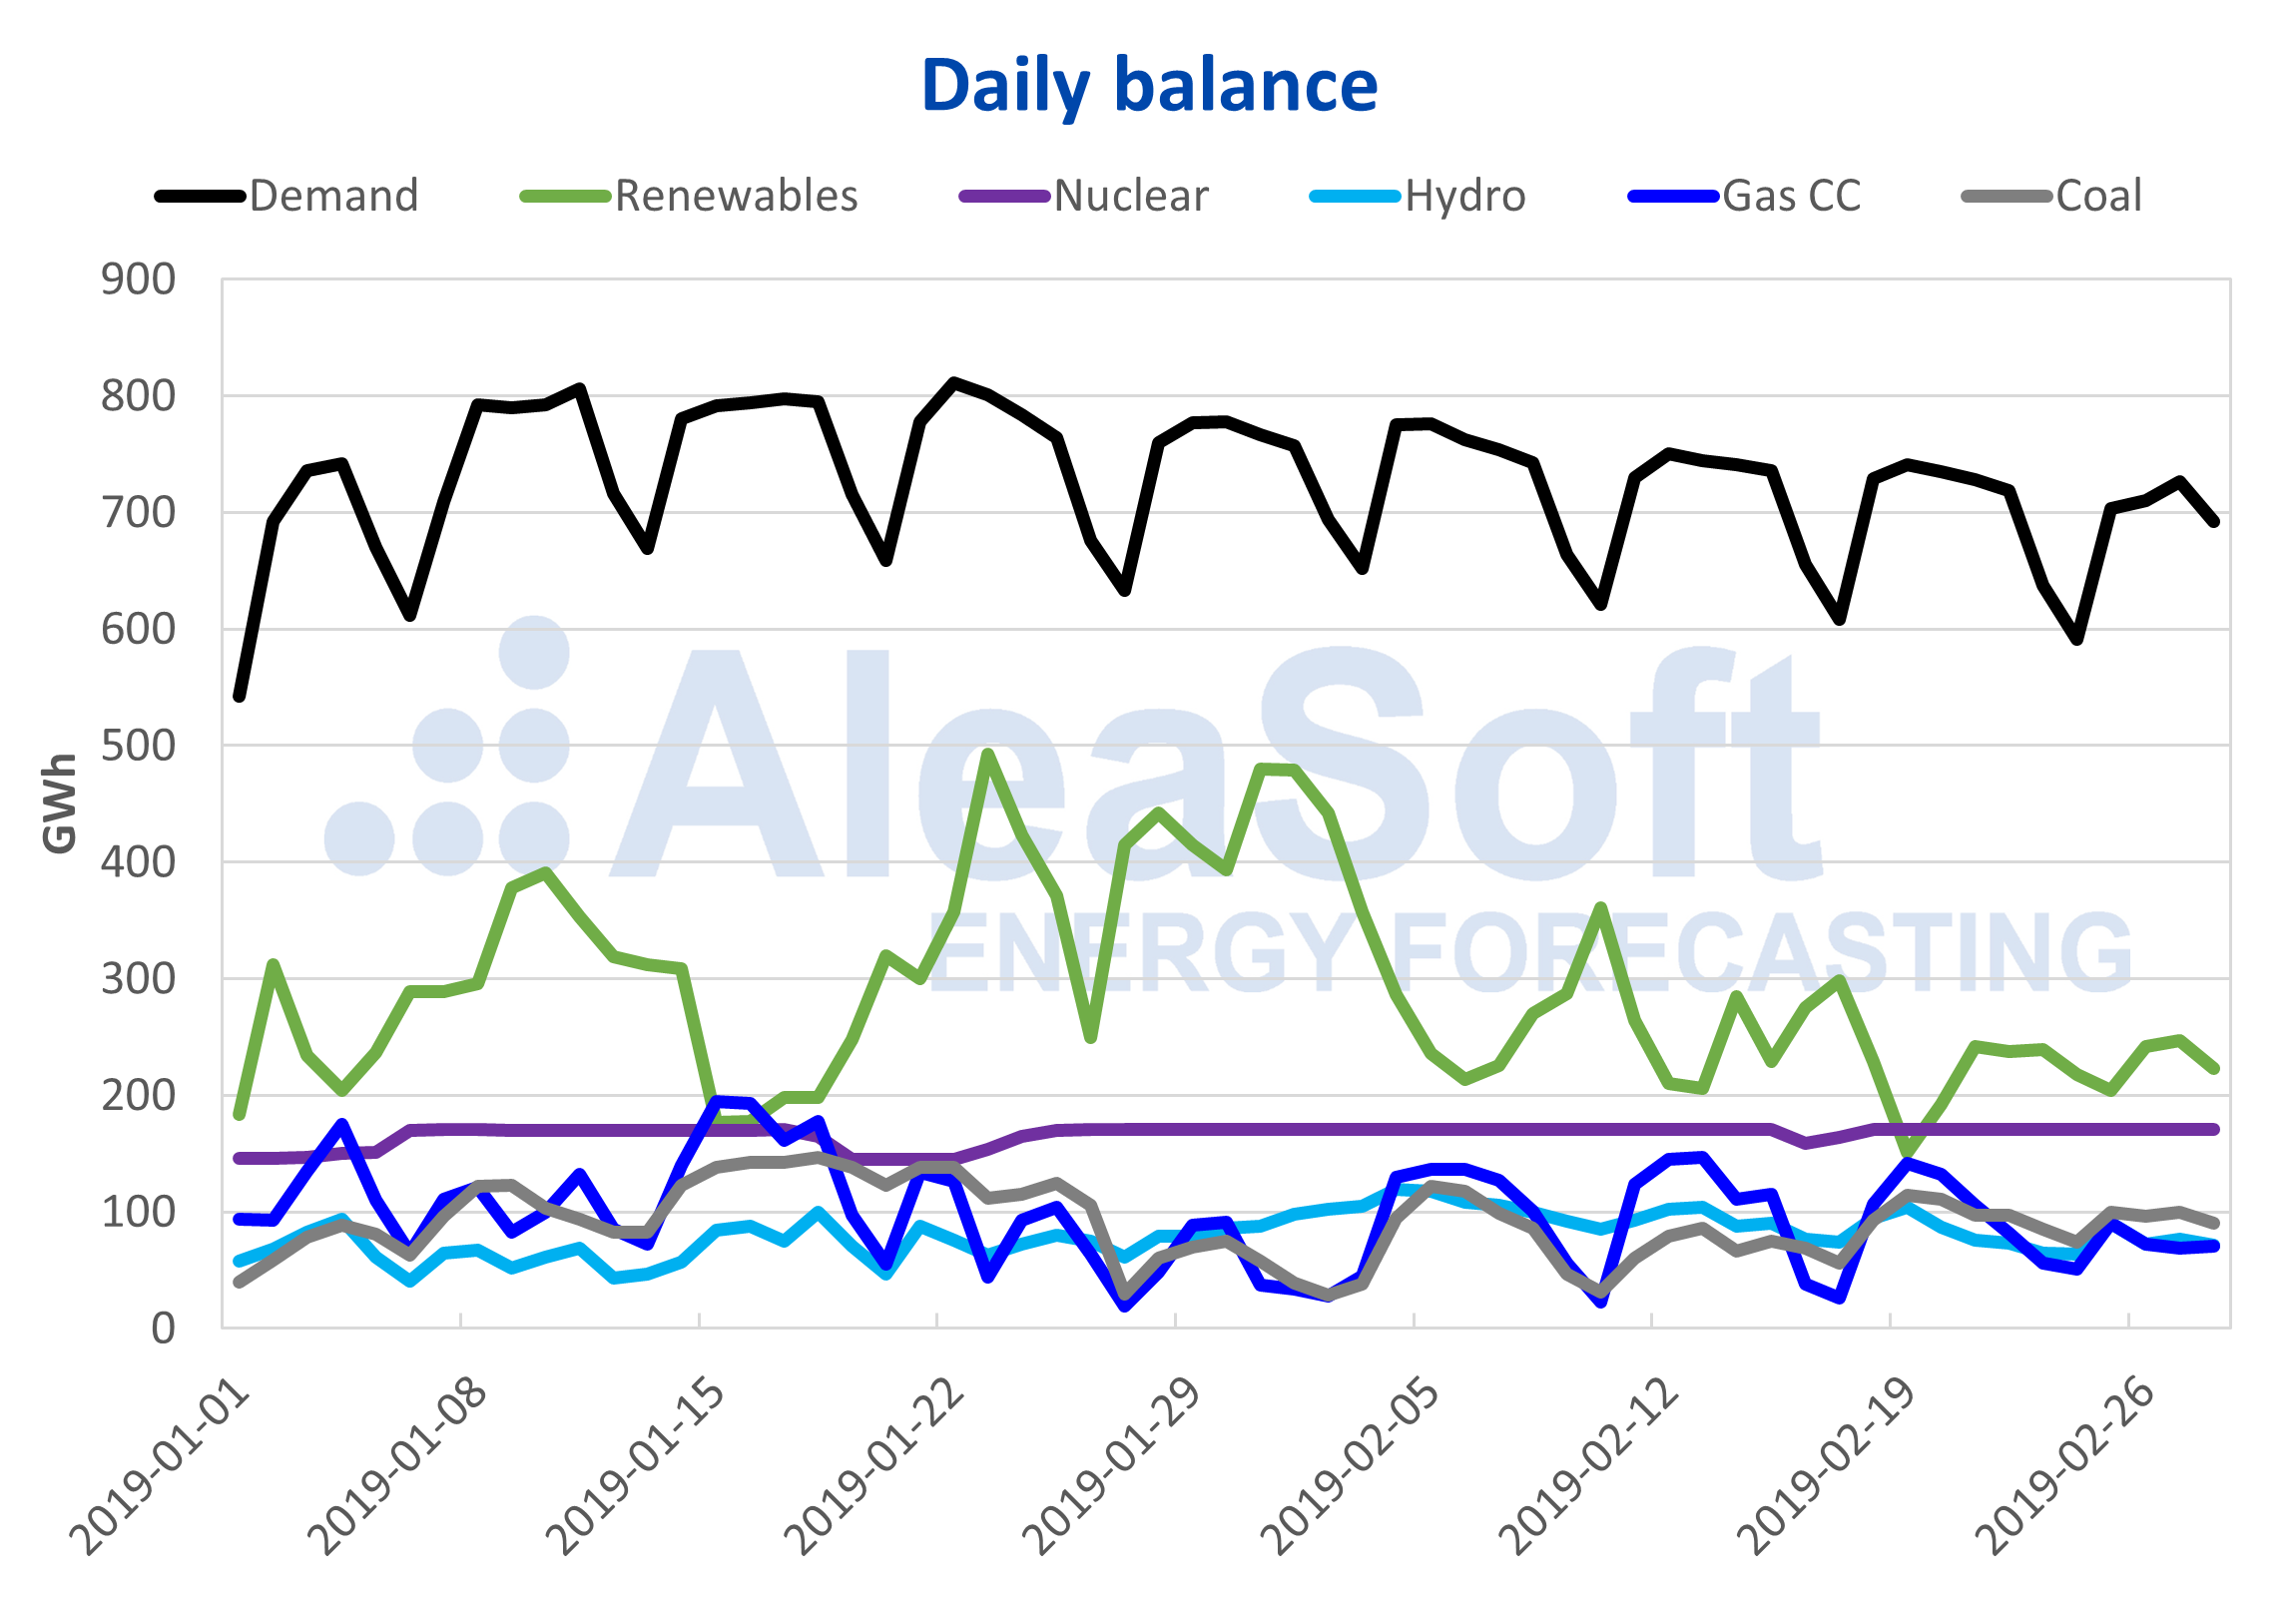 AleaSoft - Daily balance electricity demand production